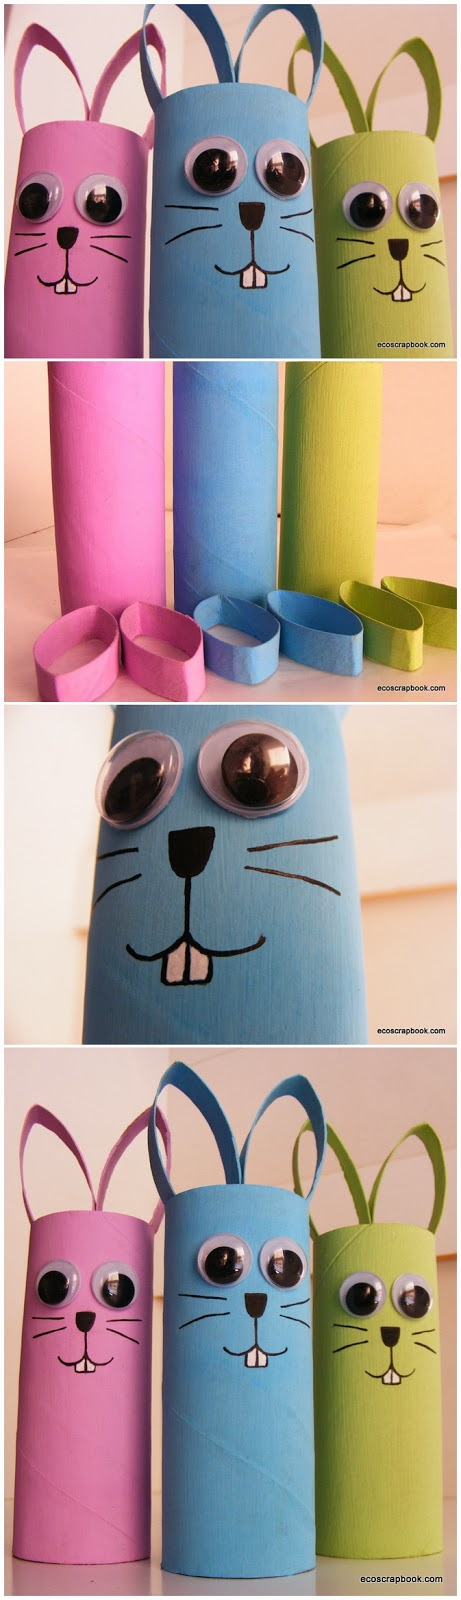 Toilet Paper Roll Bunnies Craft for Kids